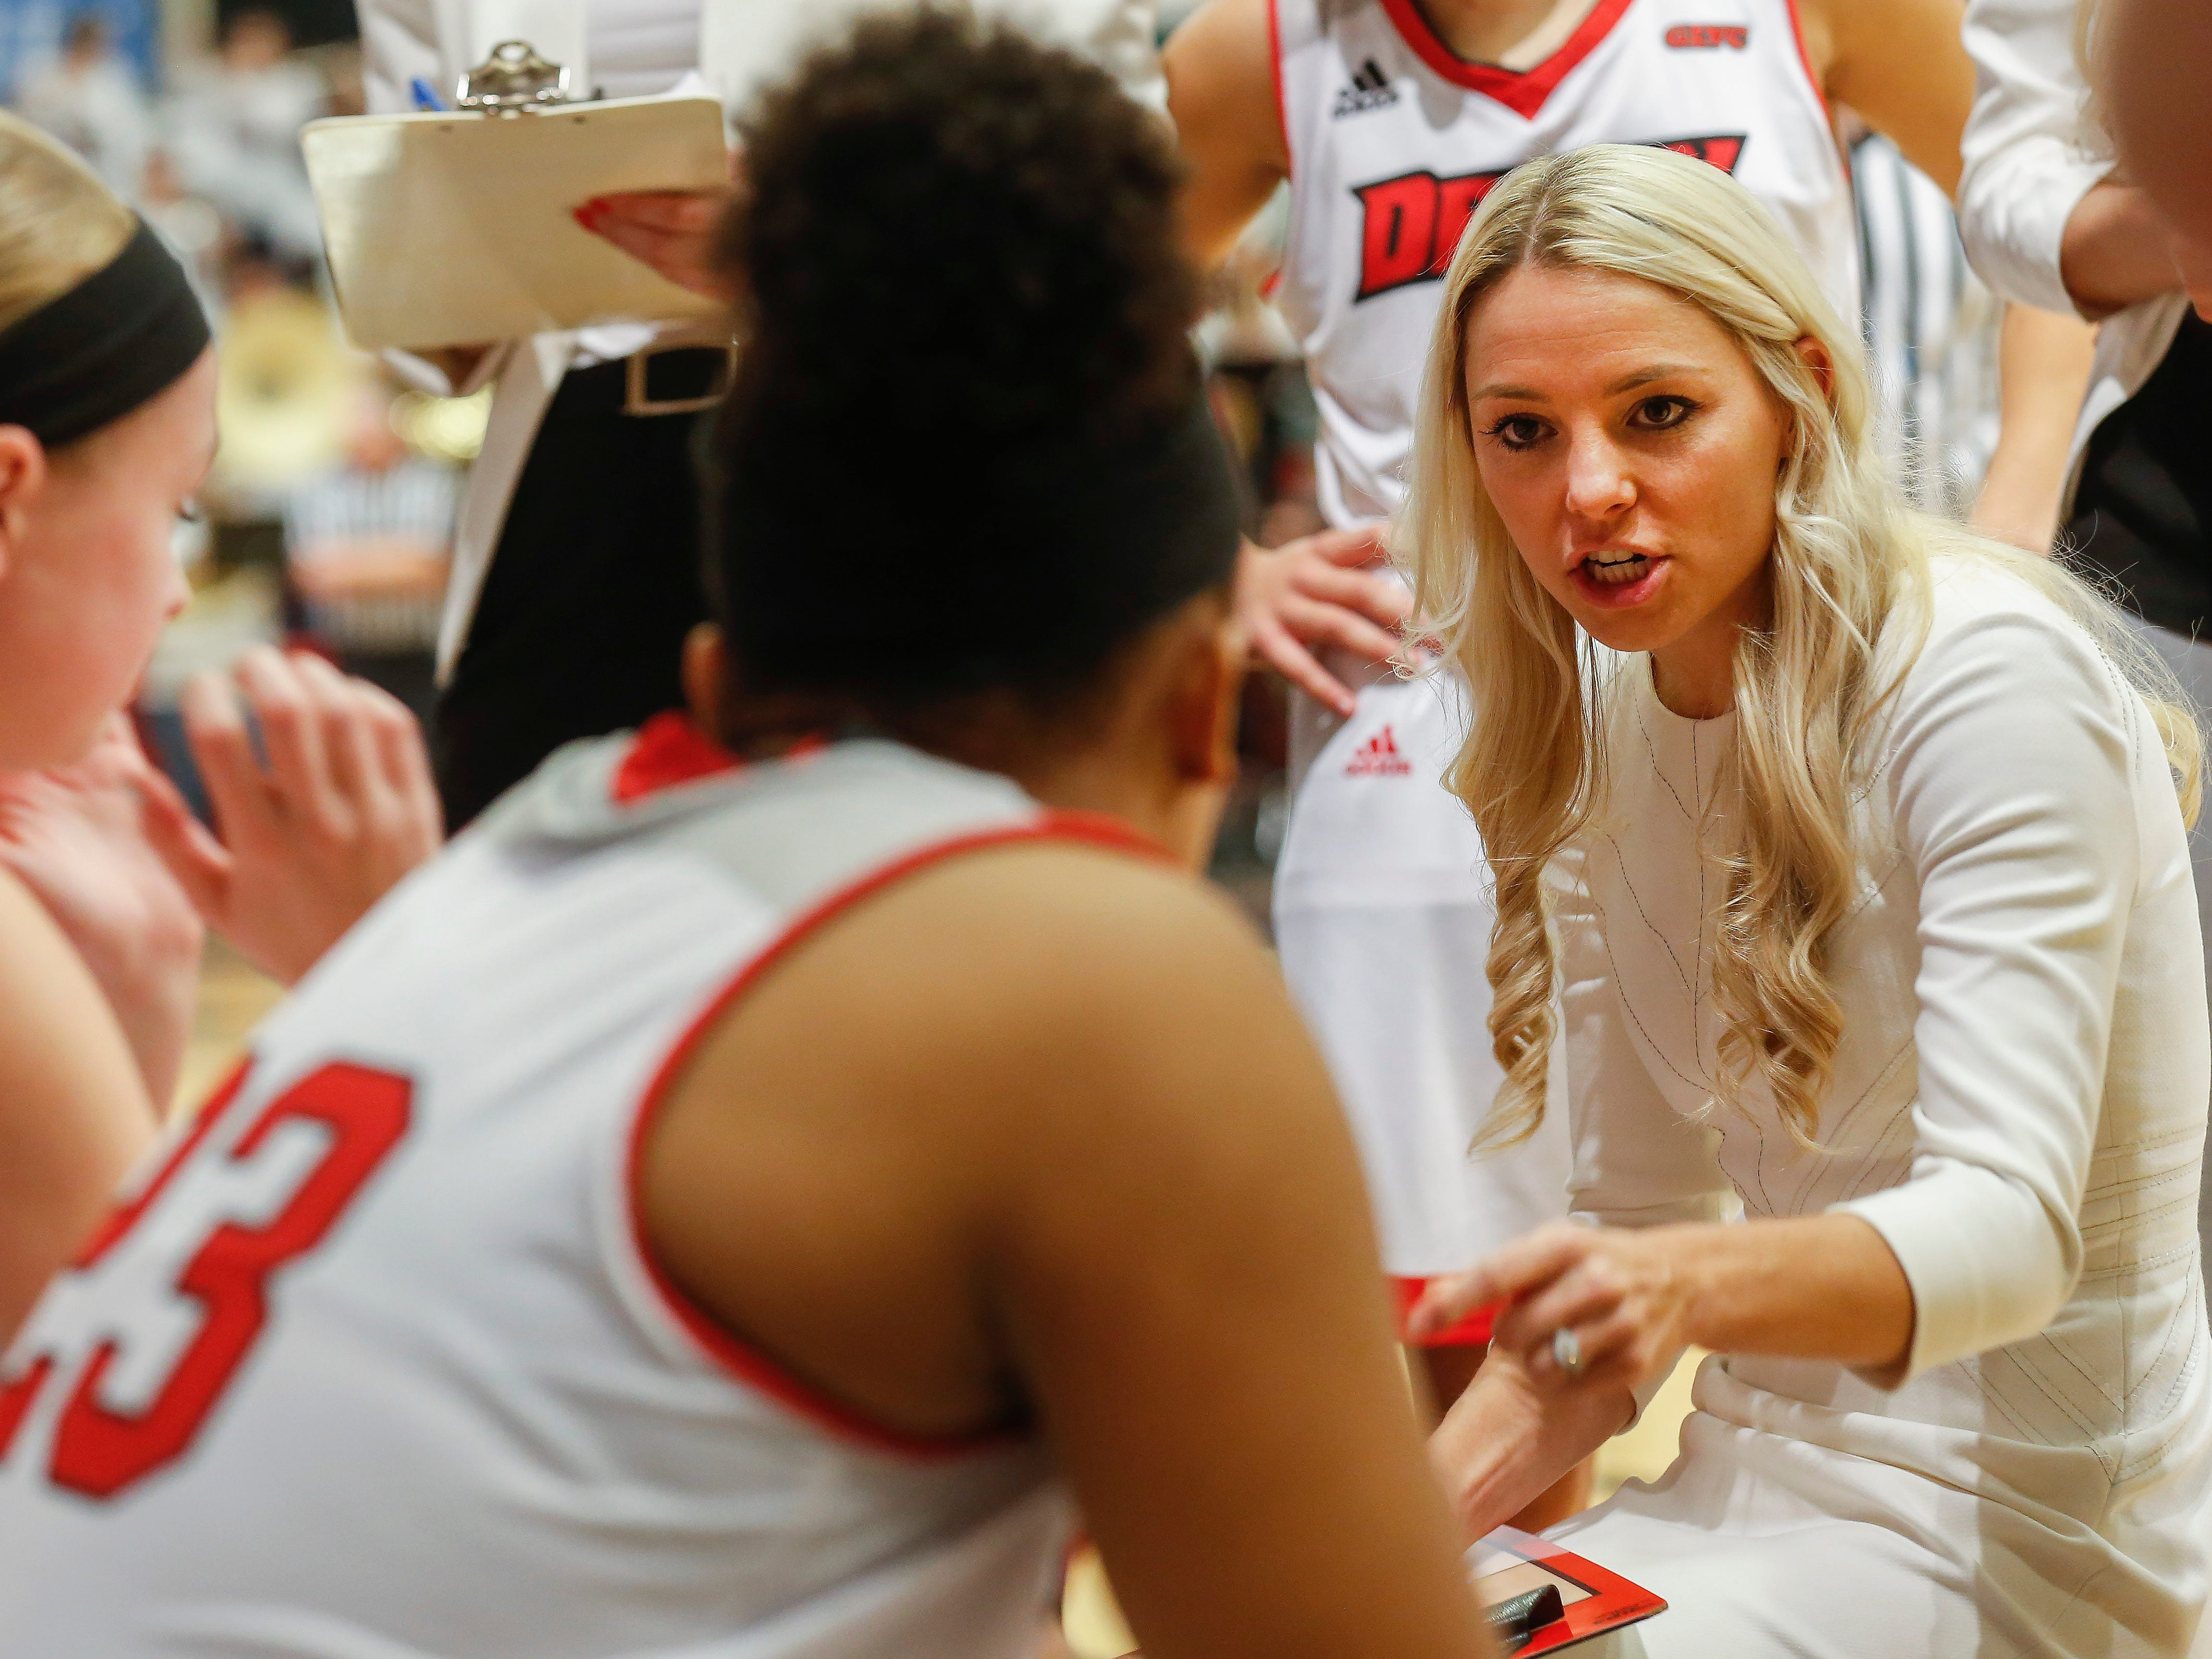 Drury head coach Molly Miller talks to her players during the Lady Panthers' 77-44 win over the University of Missouri St. Louis Tritons during the Overflow the O game at the O'Reilly Family Event Center on Saturday, Feb. 9, 2019.